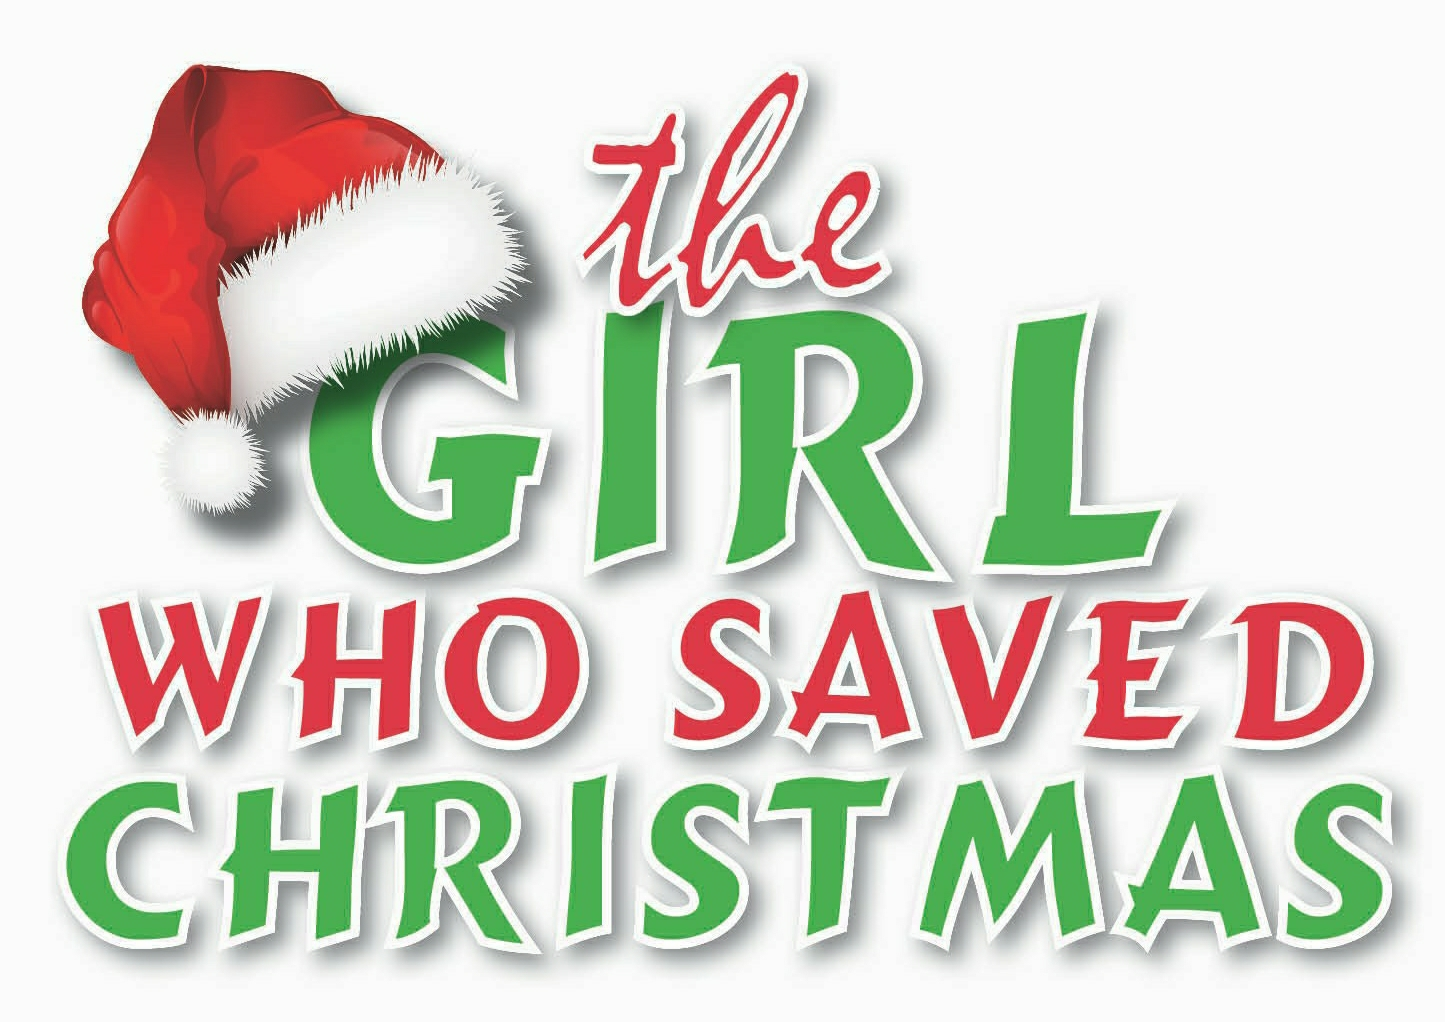 Musical Theatre: 'The Girl Who Saved Christmas' by Paul Alexander, Penny Lane & Glenn Keiles